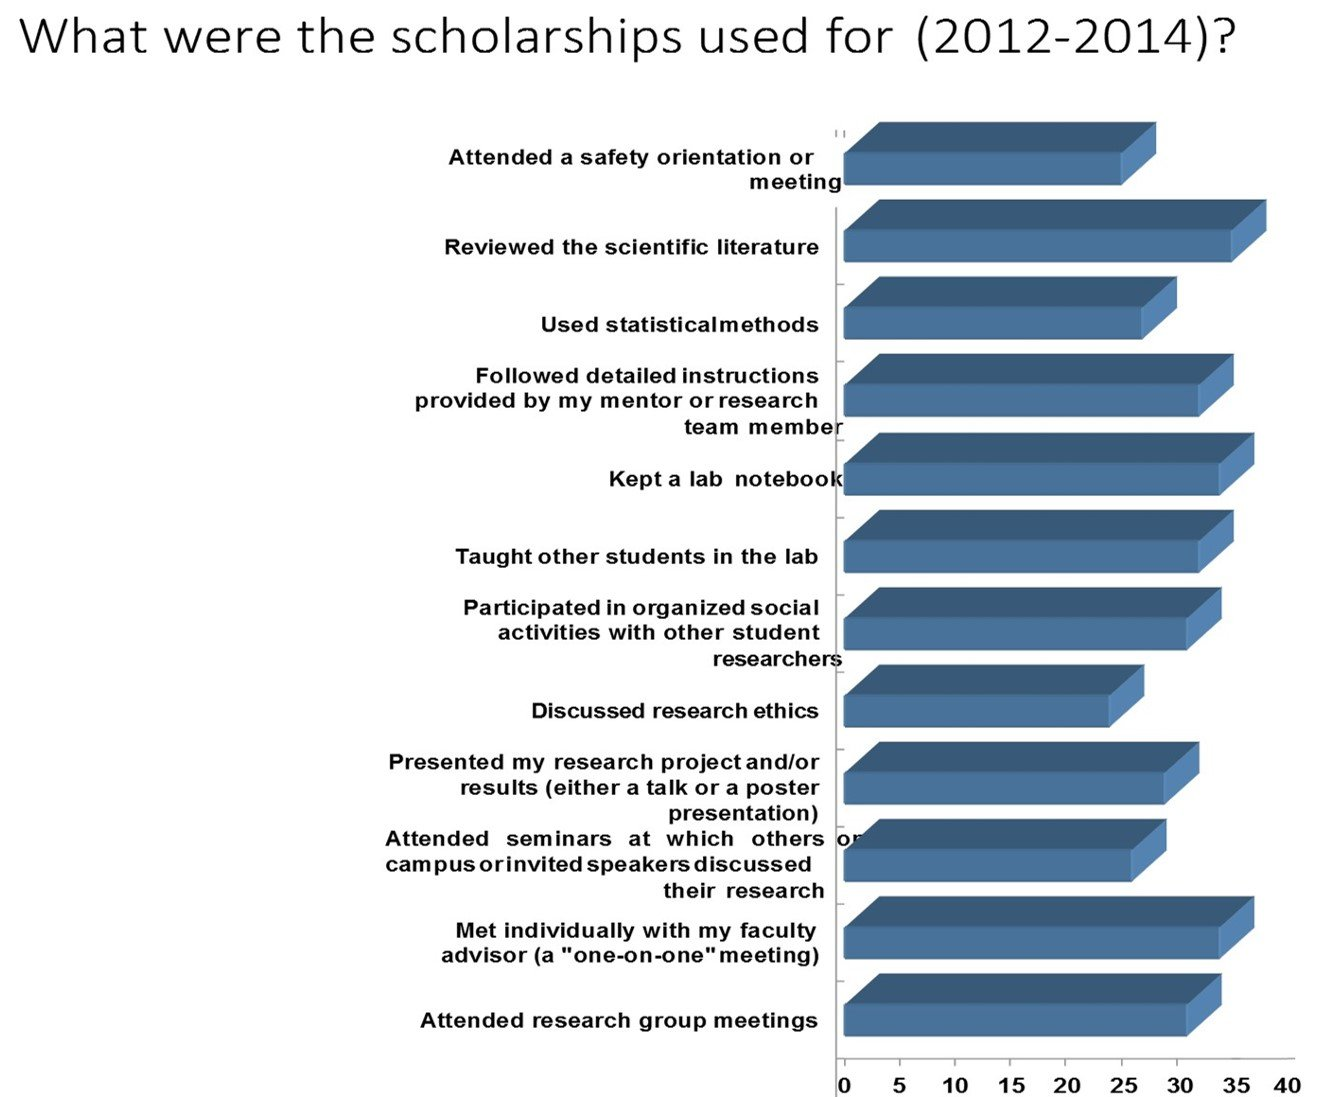 Howell Foundation and CSUPERB Scholarships Chart and what they were used for from 2012 - 2014